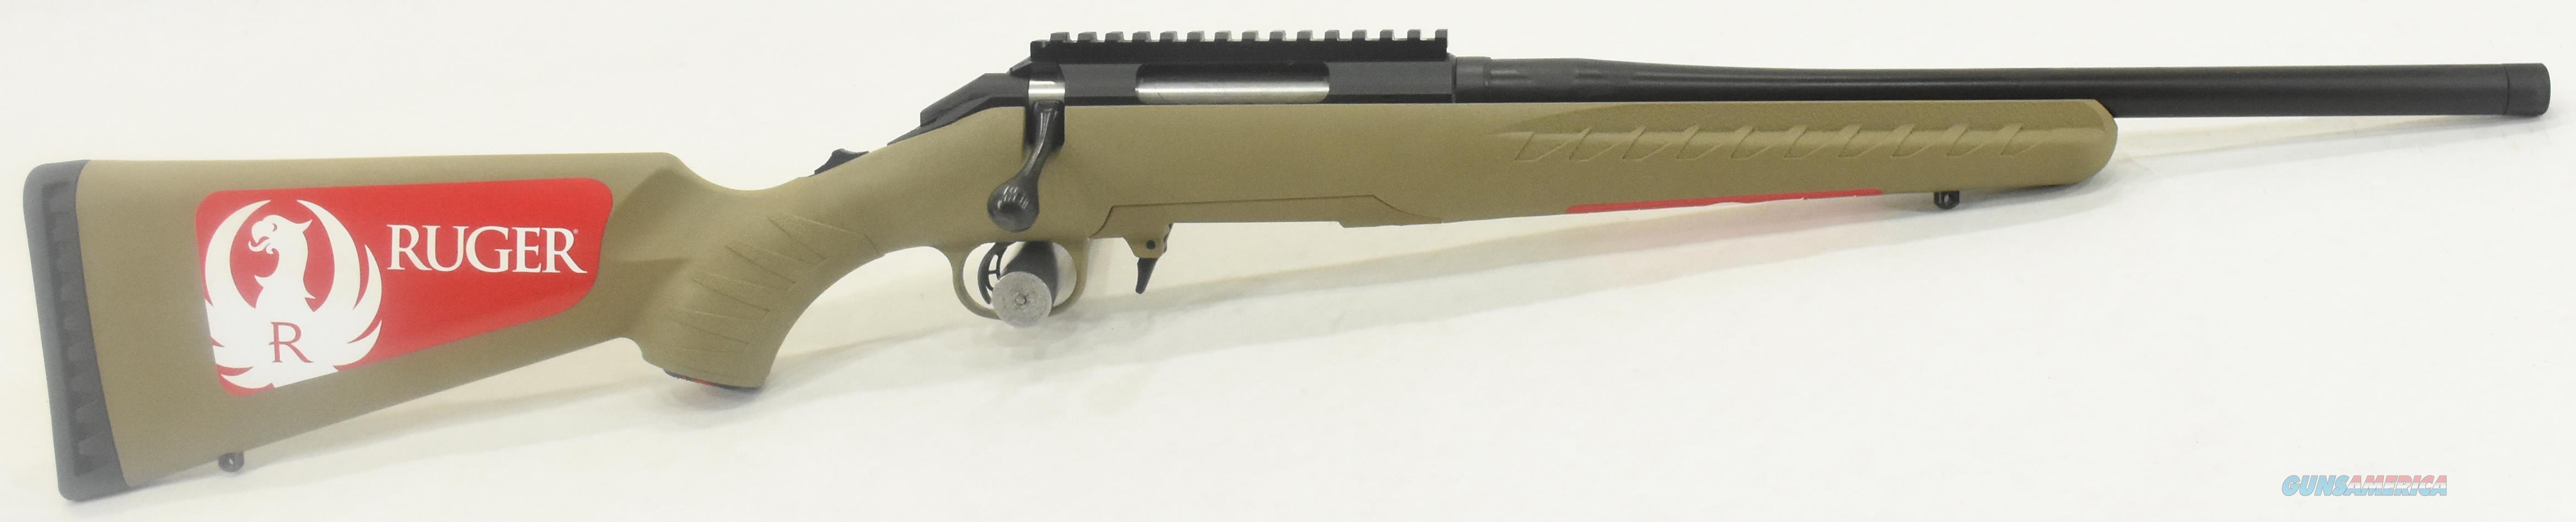 American Ranch FDE 300BLK 16In   26968  Guns > Rifles > Ruger Rifles > American Rifle